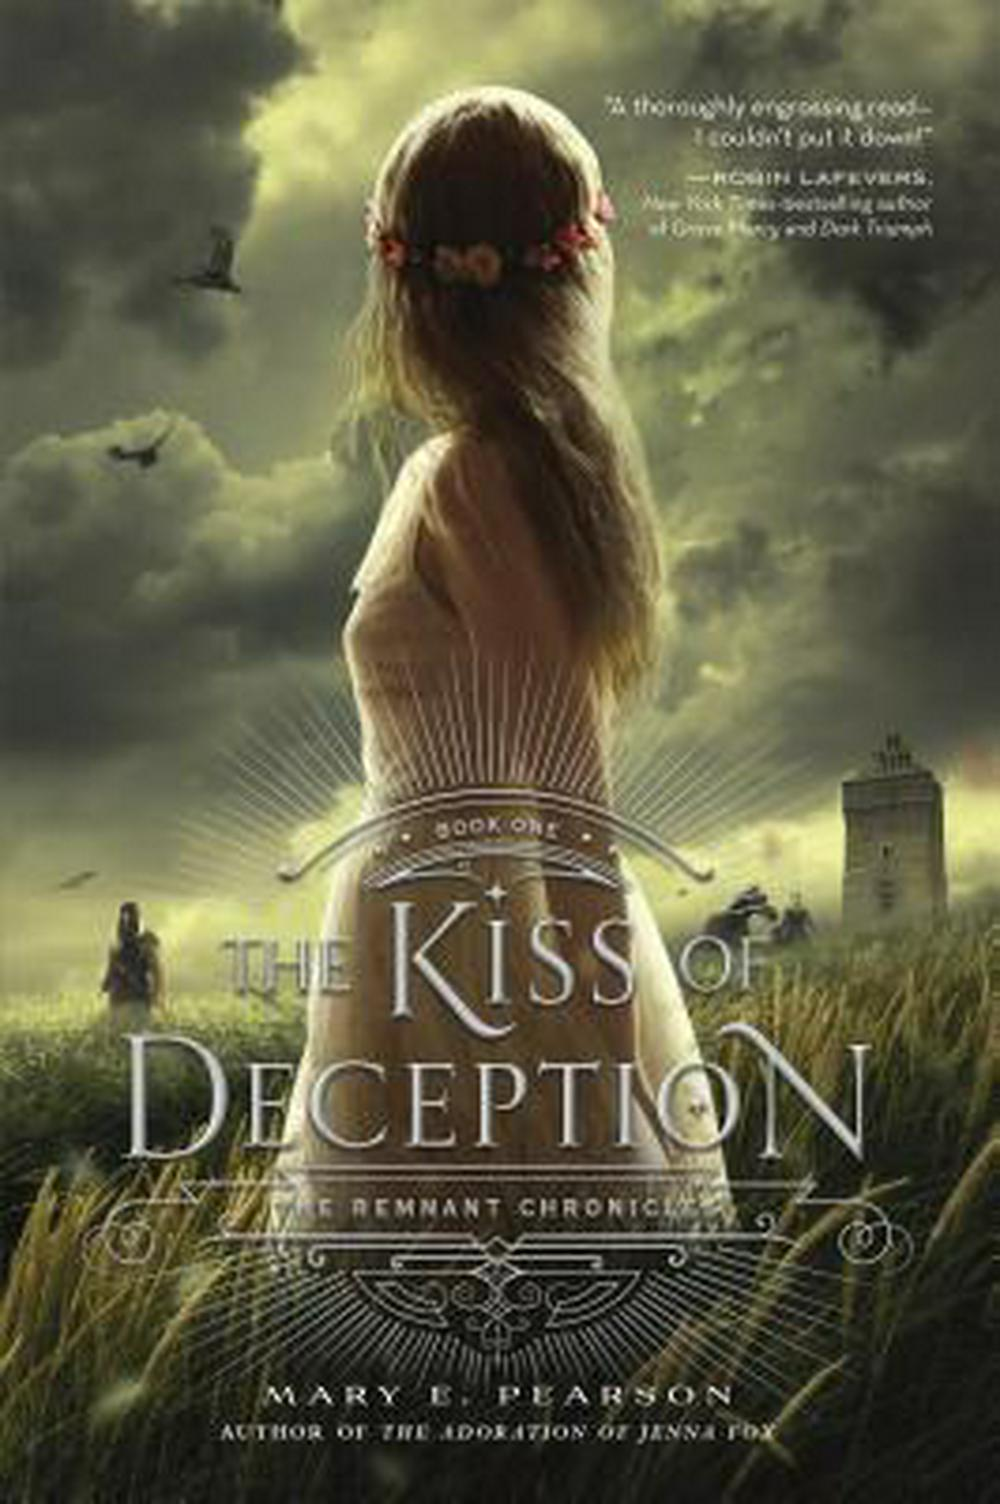 The Kiss of Deception (Remnant Chronicles) by Mary E. Pearson, ISBN: 9781250063151